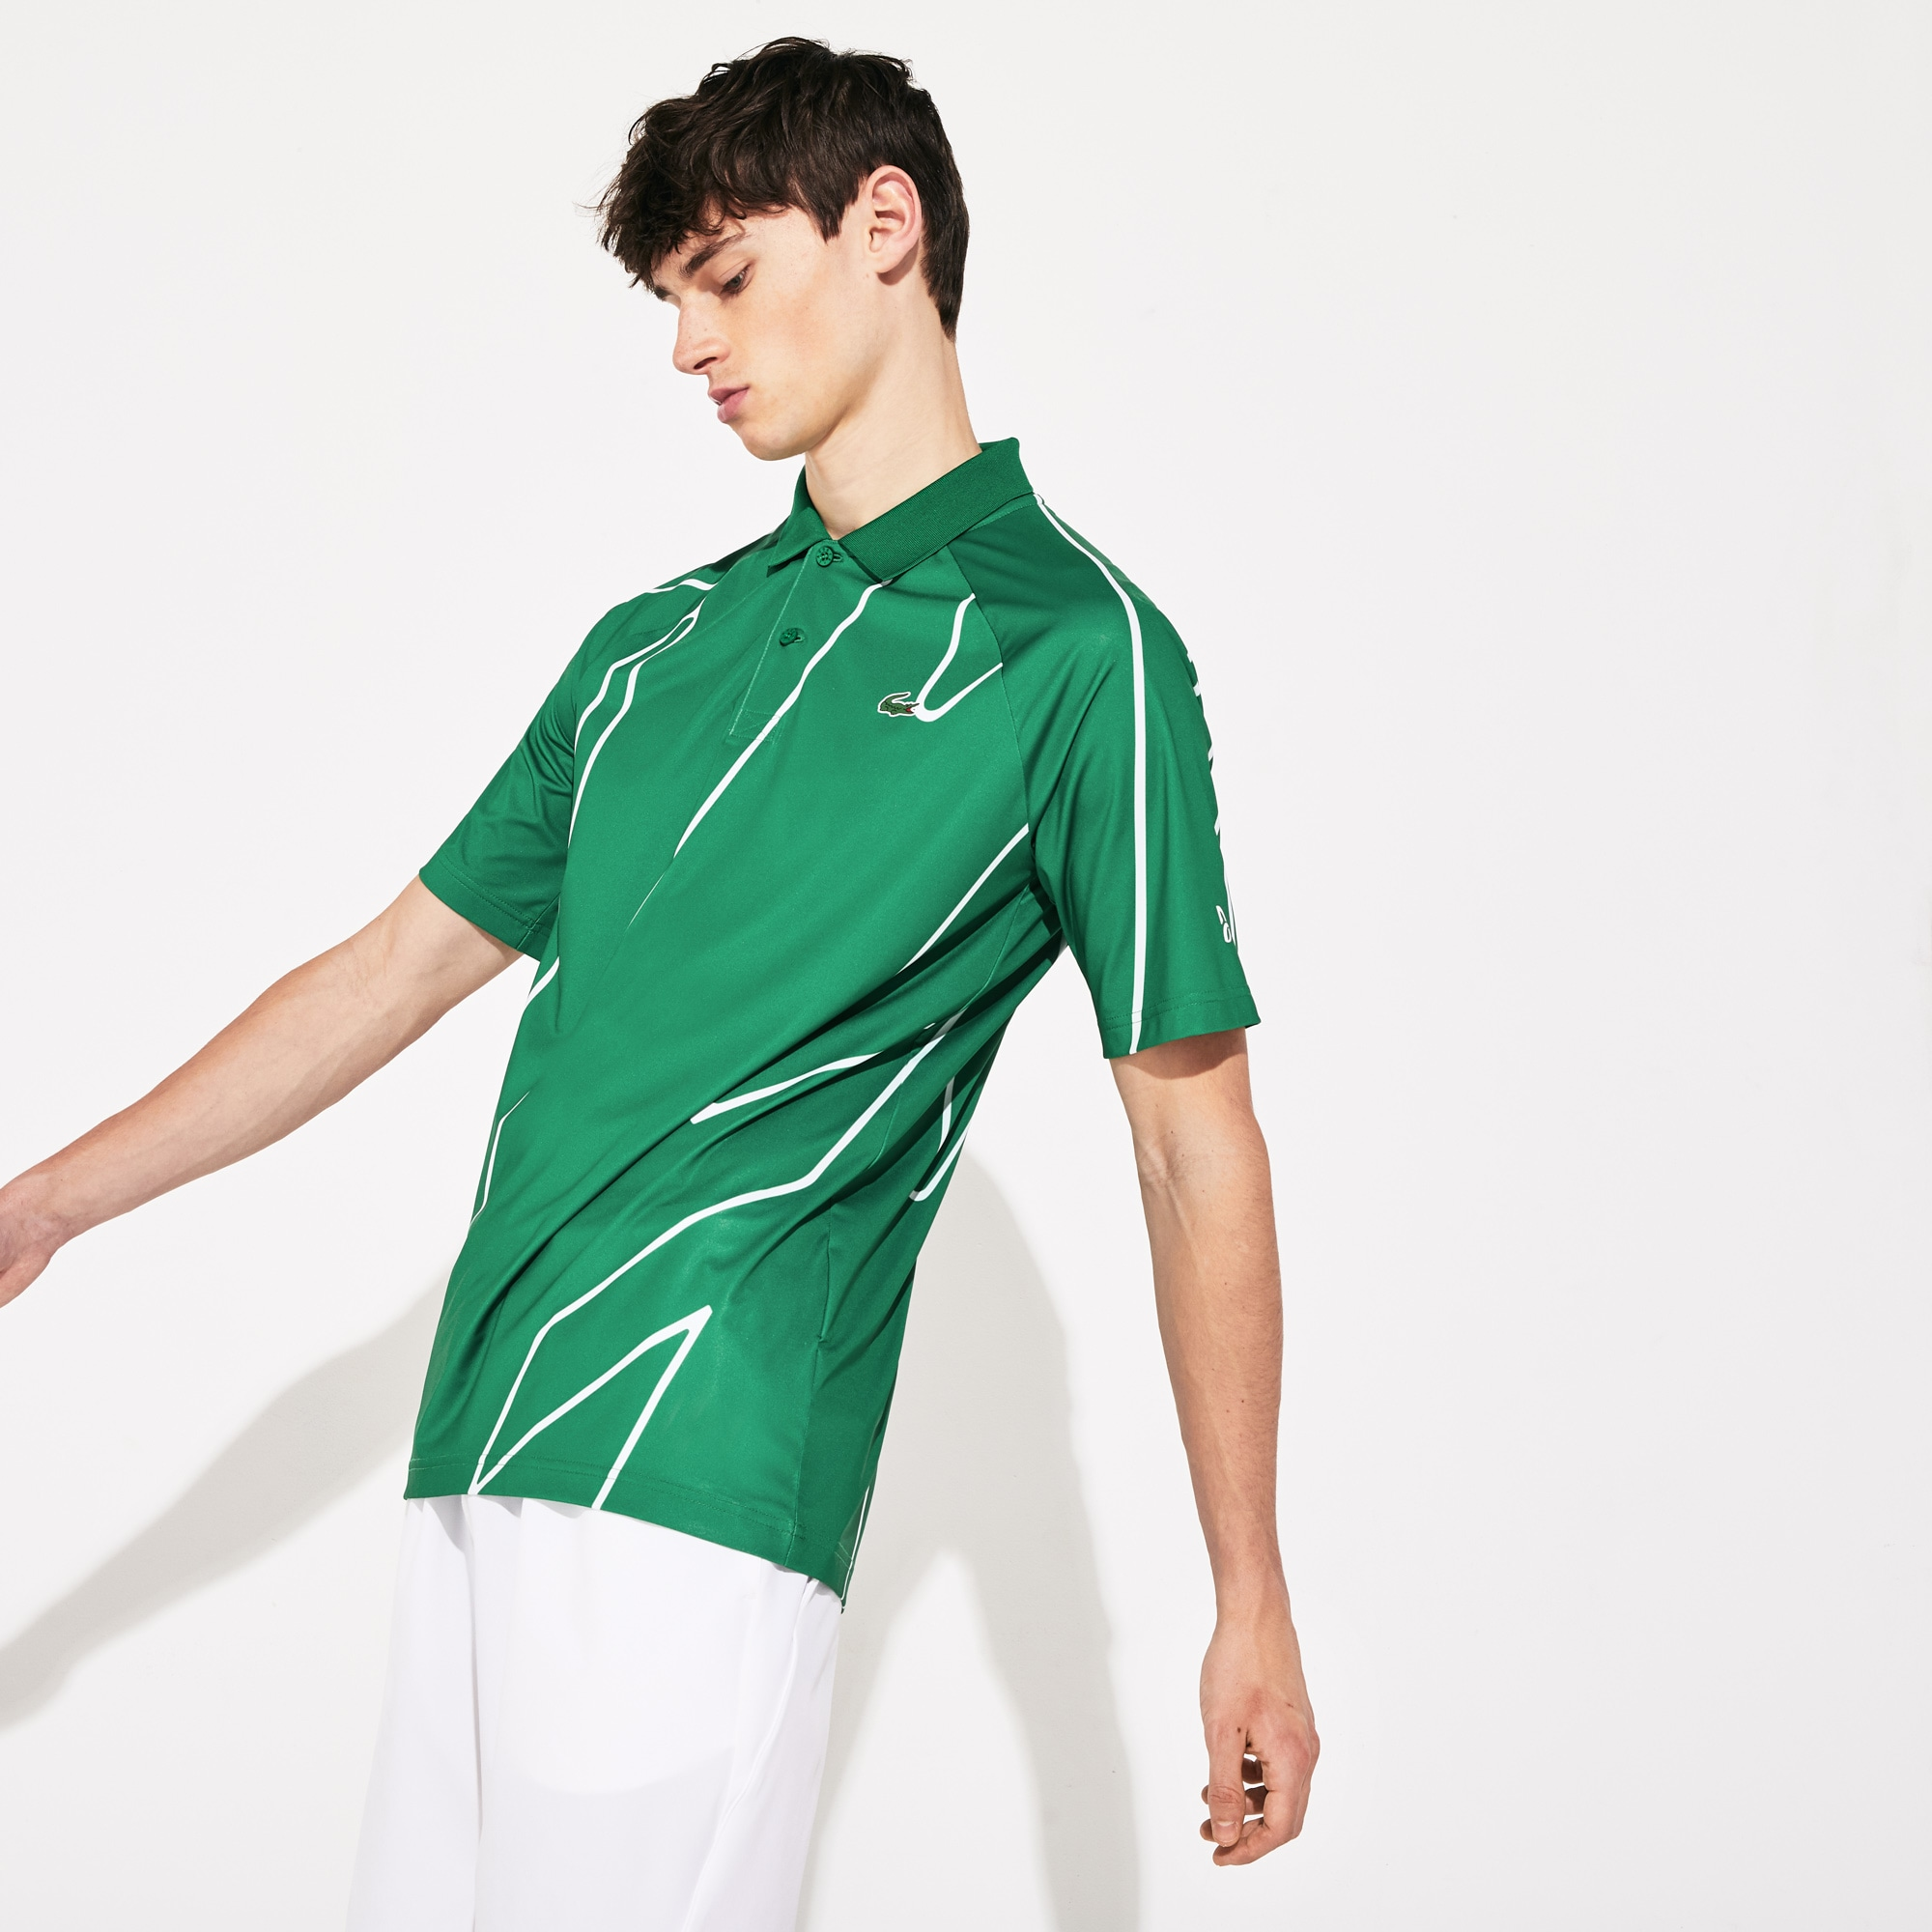 라코스테 Lacoste Mens SPORT Novak Djokovic Printed Breathable Polo Shirt,Green / White - 4YA